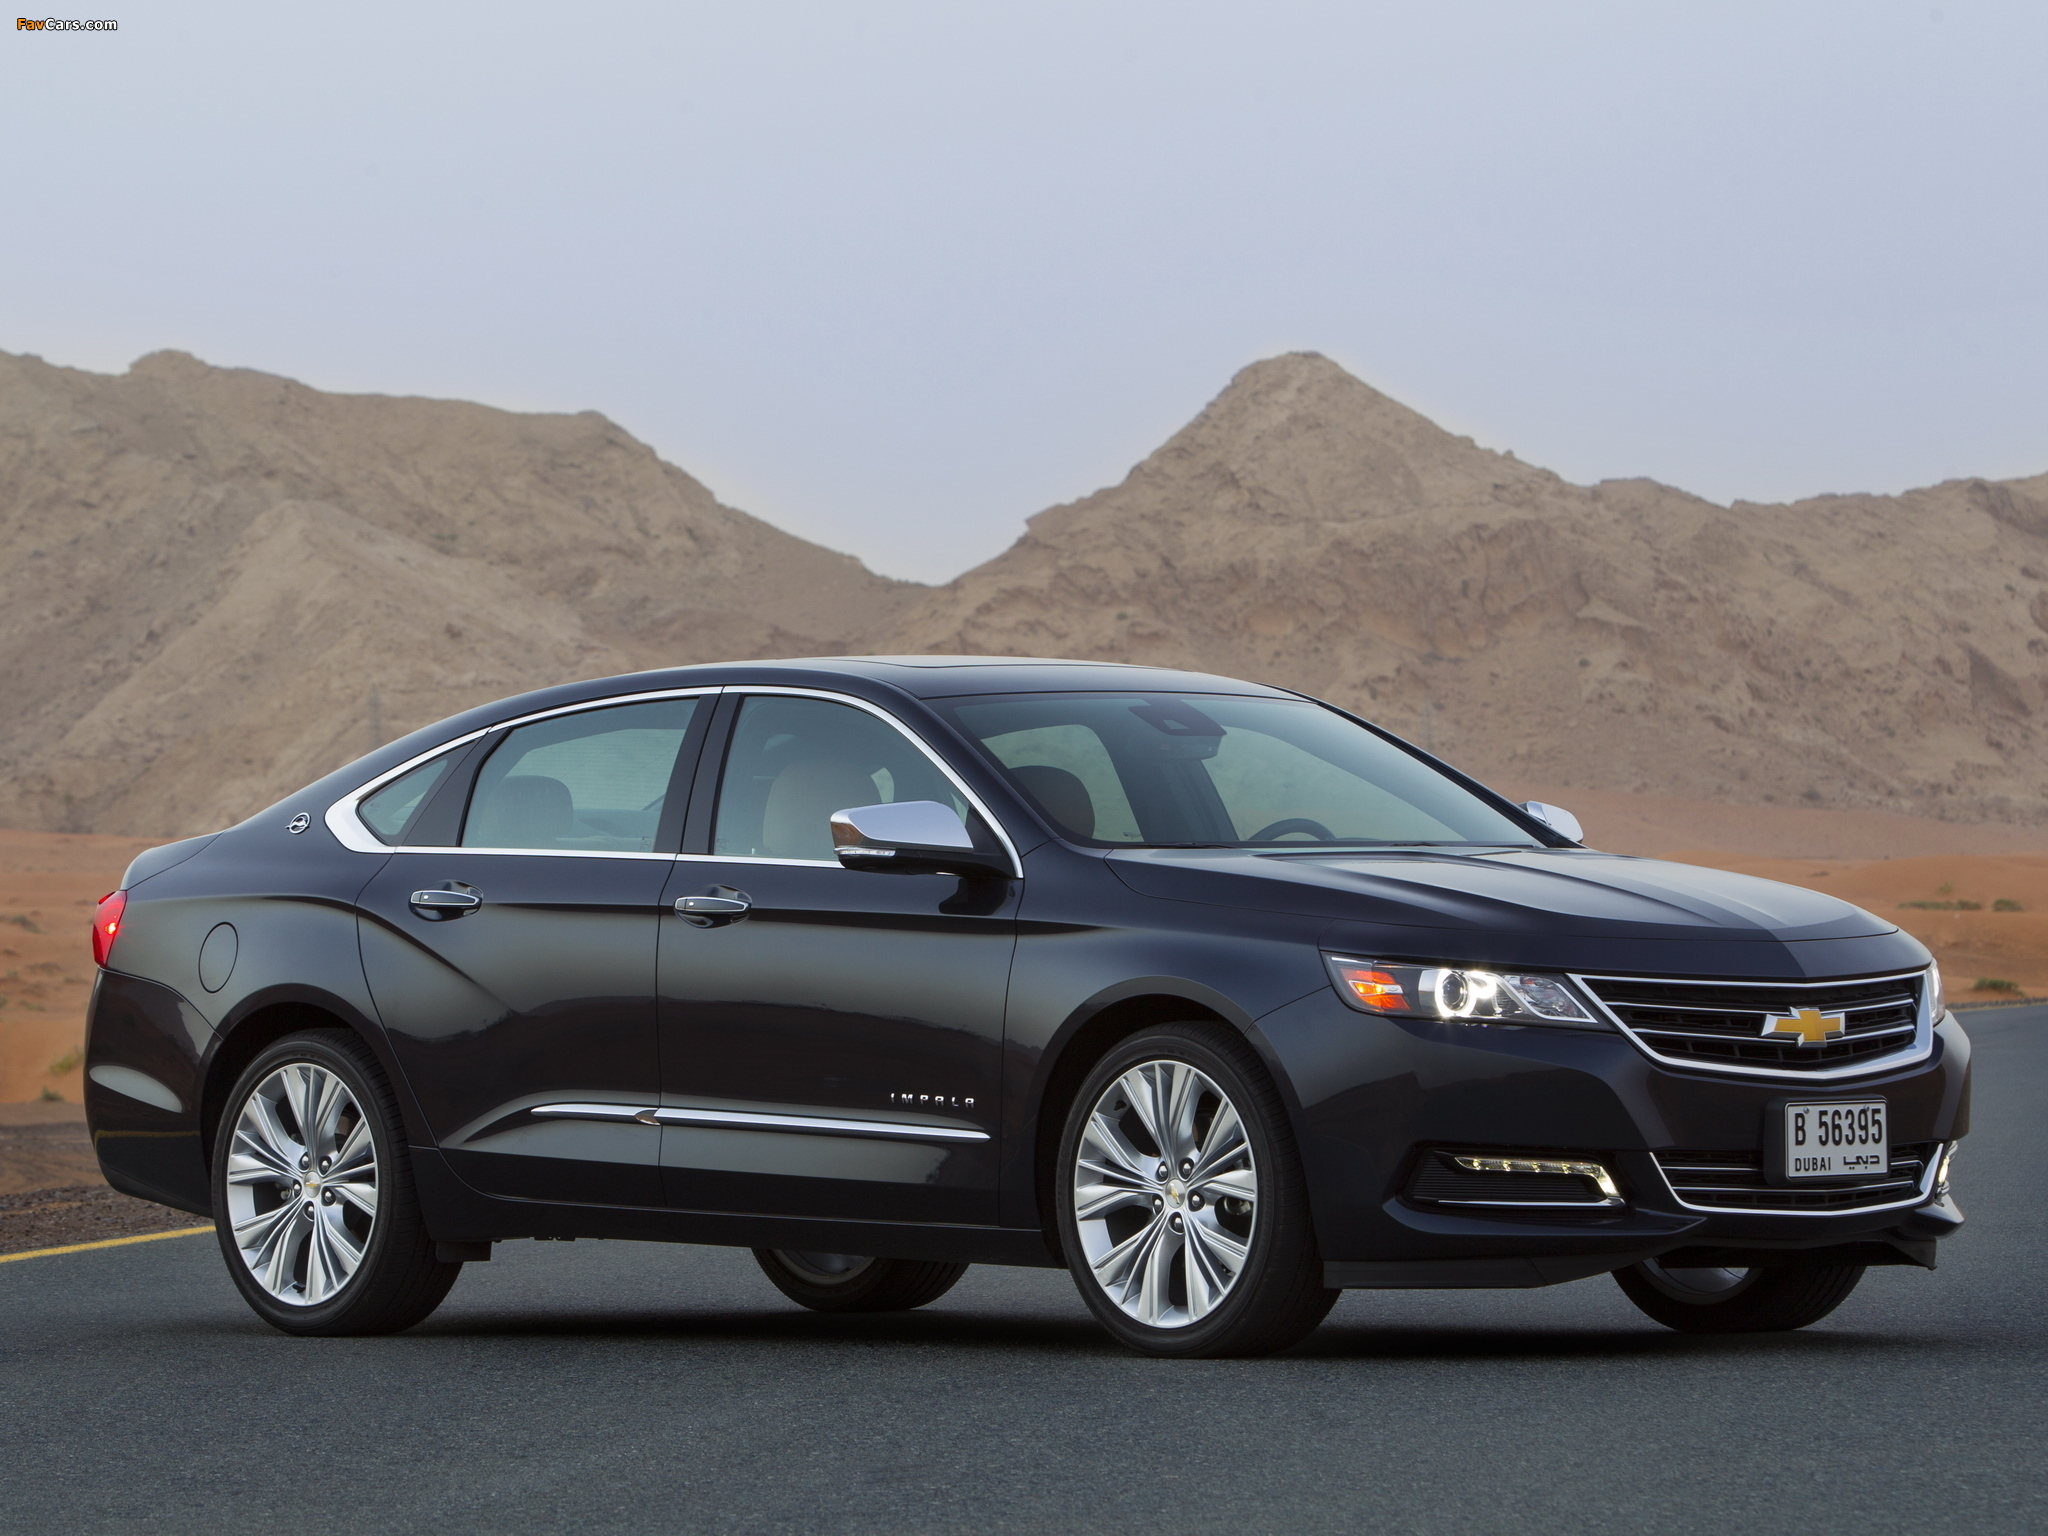 chevrolet impala ltz 2013 wallpapers 2048x1536. Cars Review. Best American Auto & Cars Review